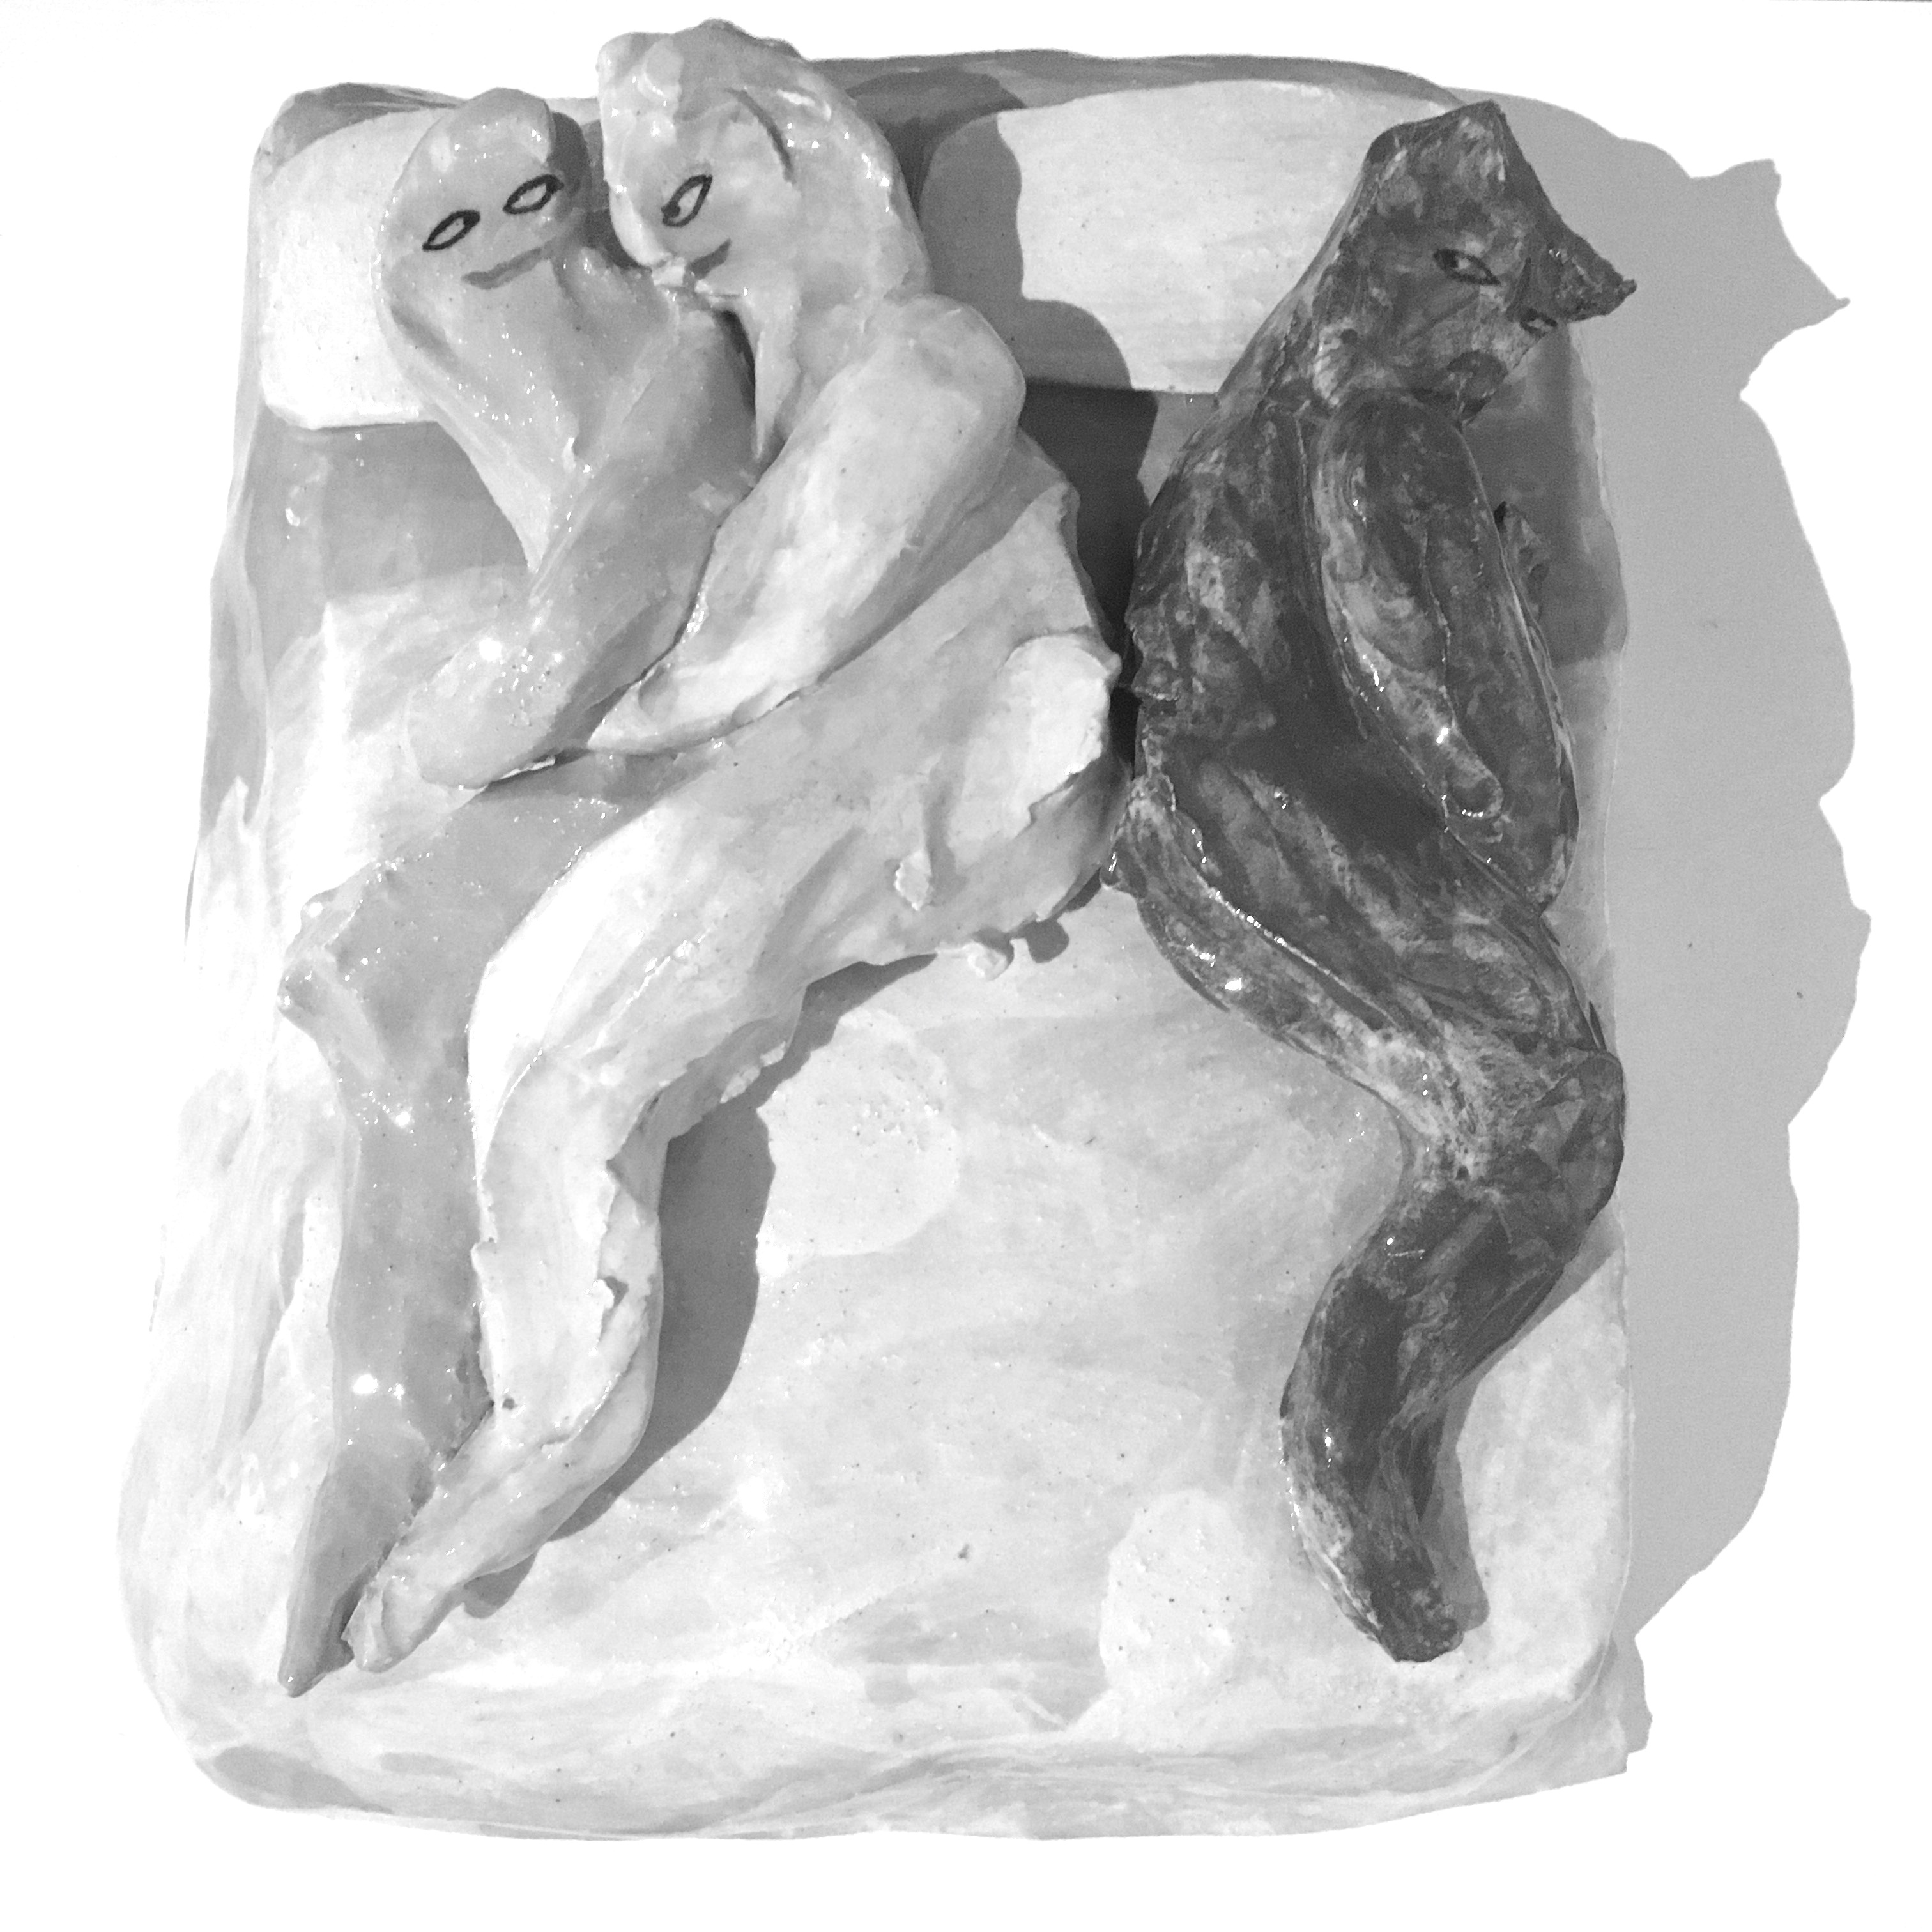 A clay model of a double bed and two people spooning on it, while another person is turned the other way.